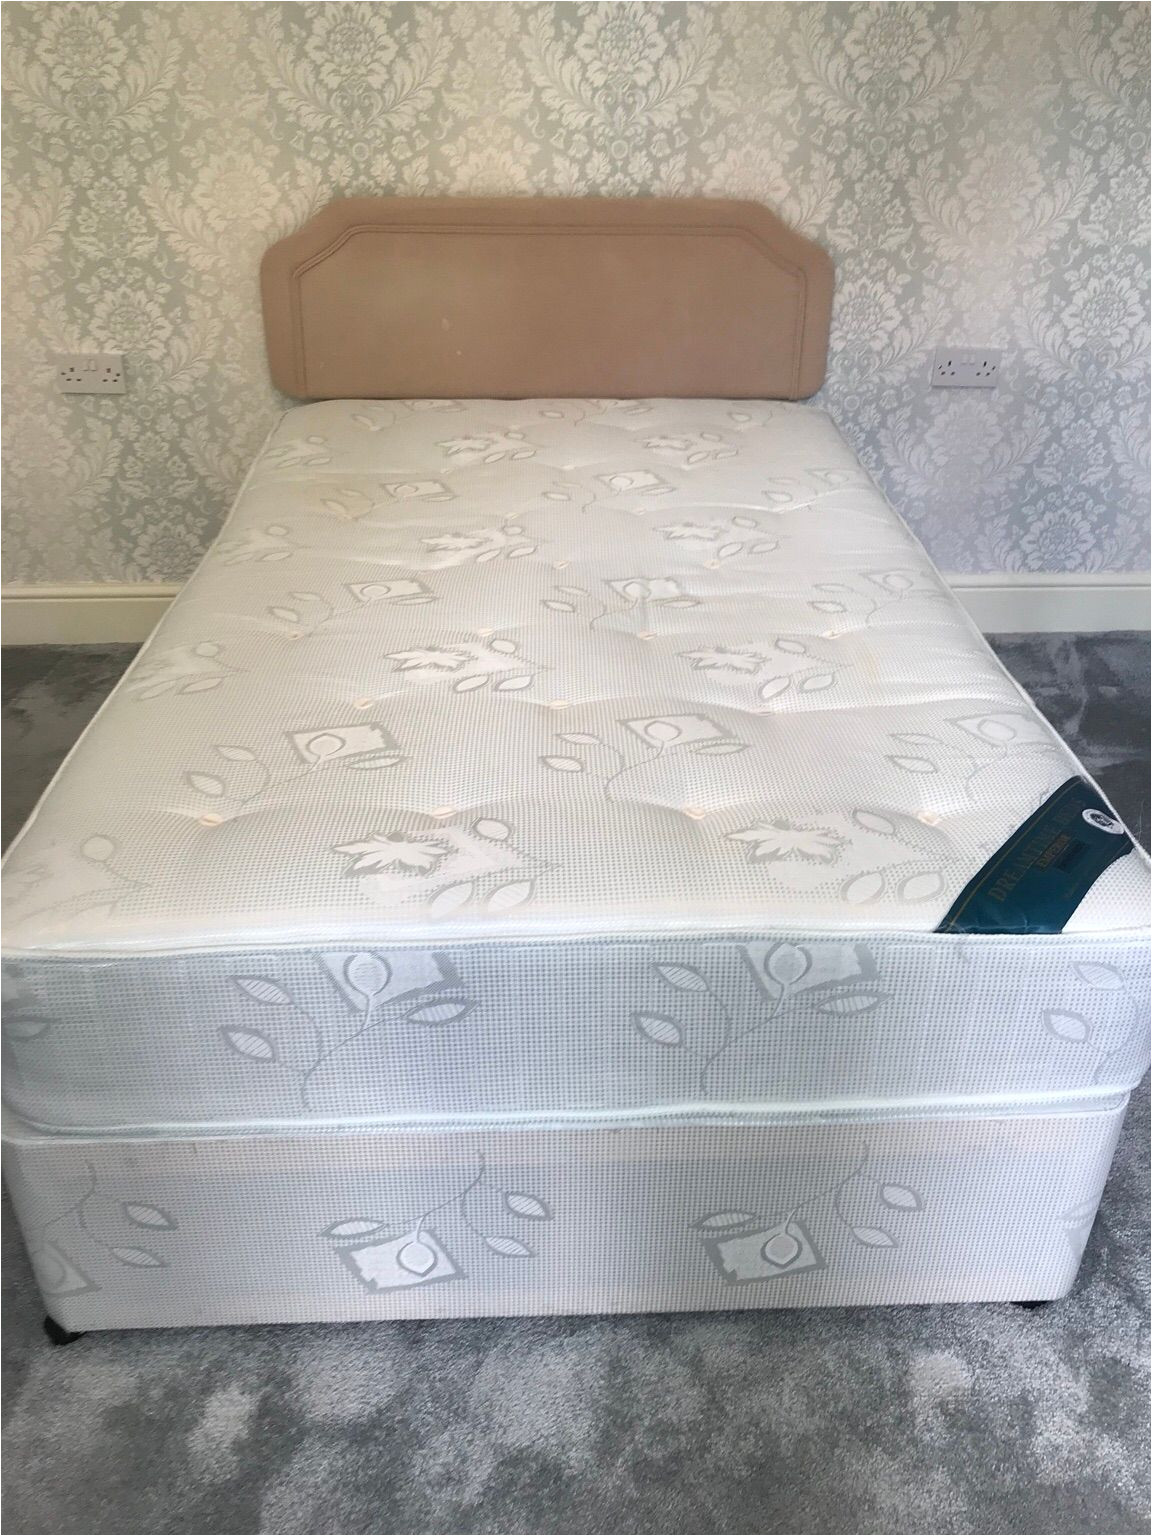 3 4 divan bed with headboard 3bfdd8d0 jpg